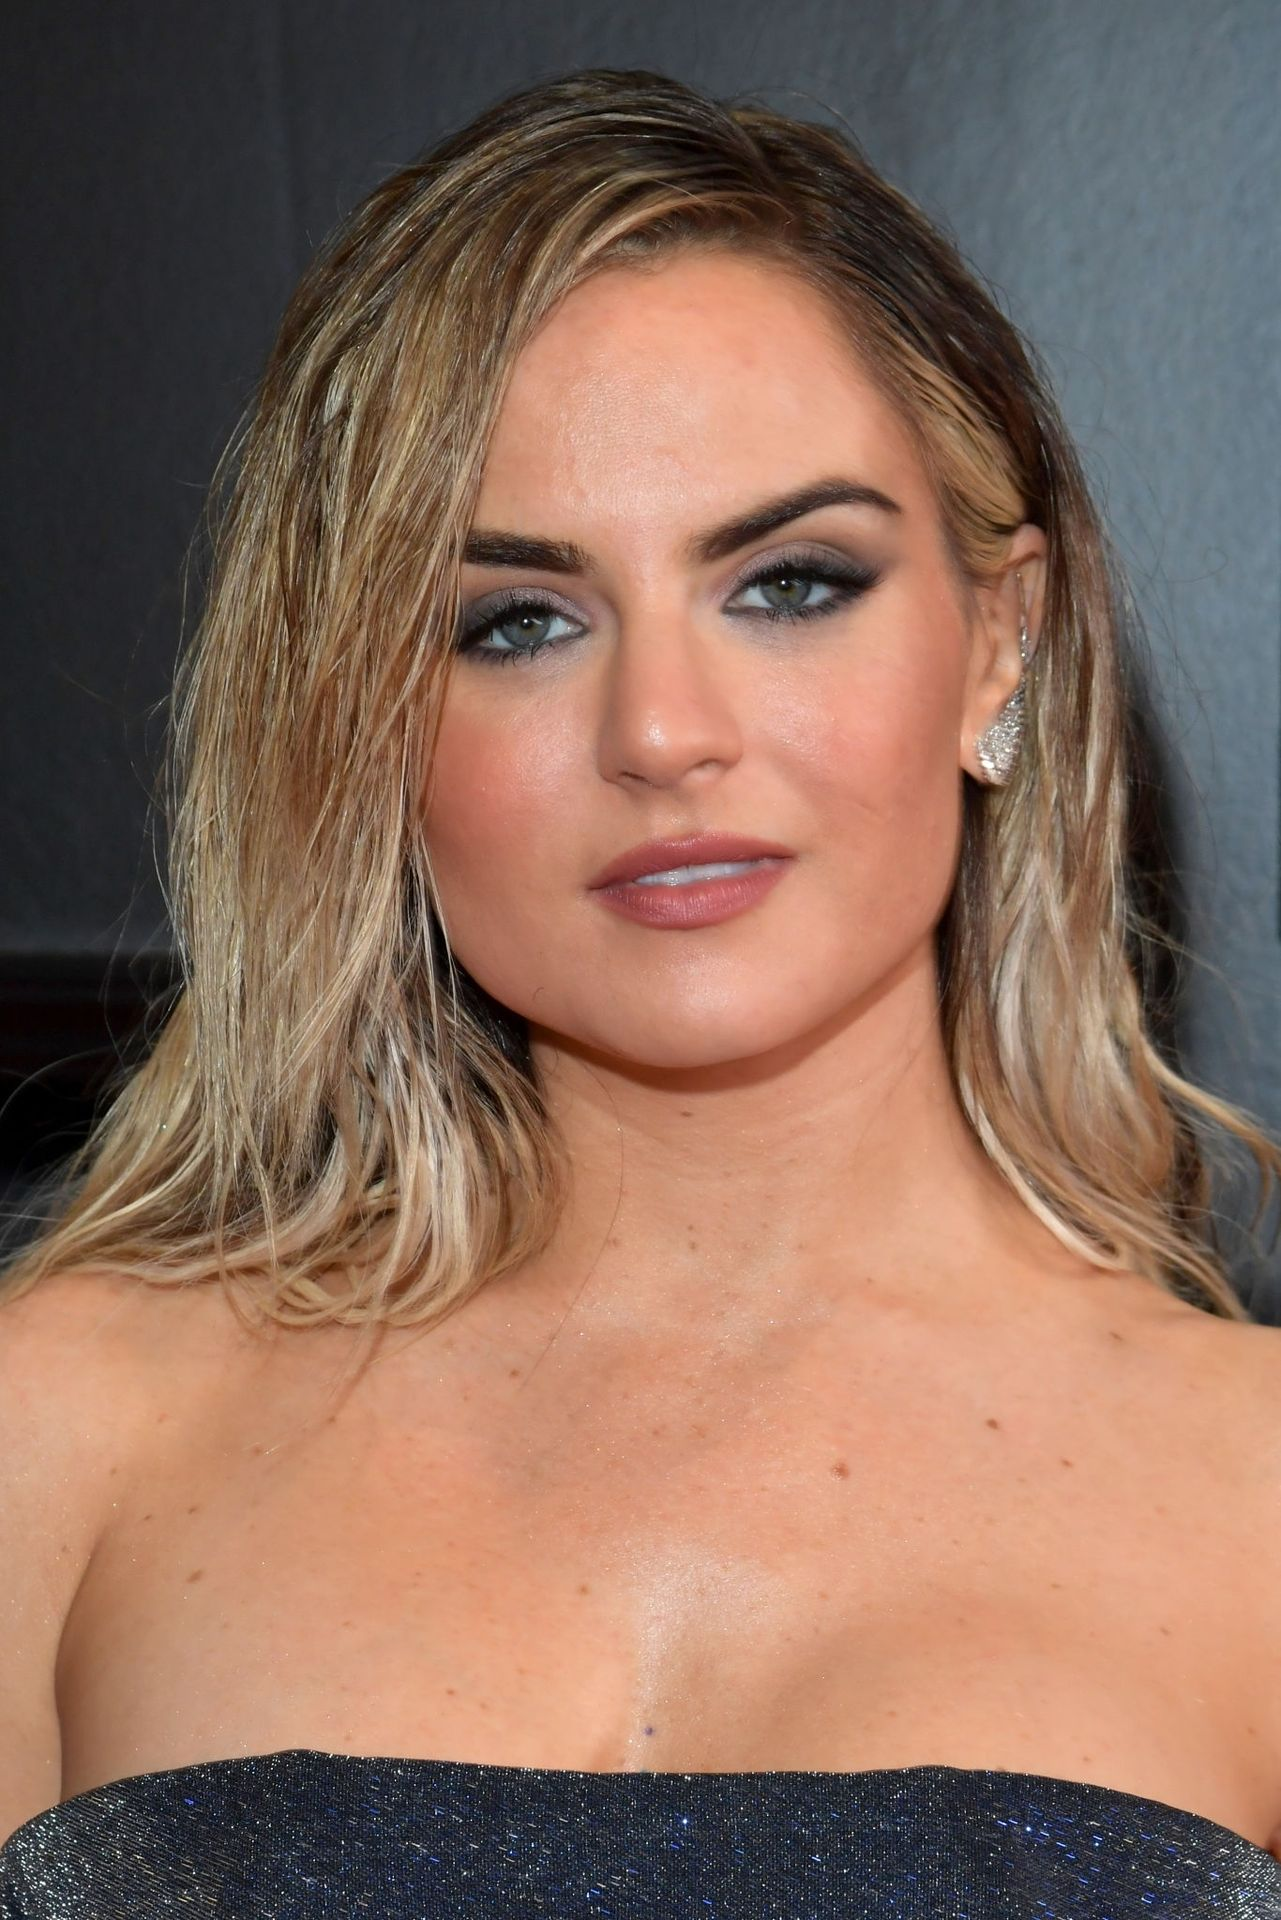 Jojo Shows Her Legs And Cleavage At The 62nd Annual Grammy Awards 0033